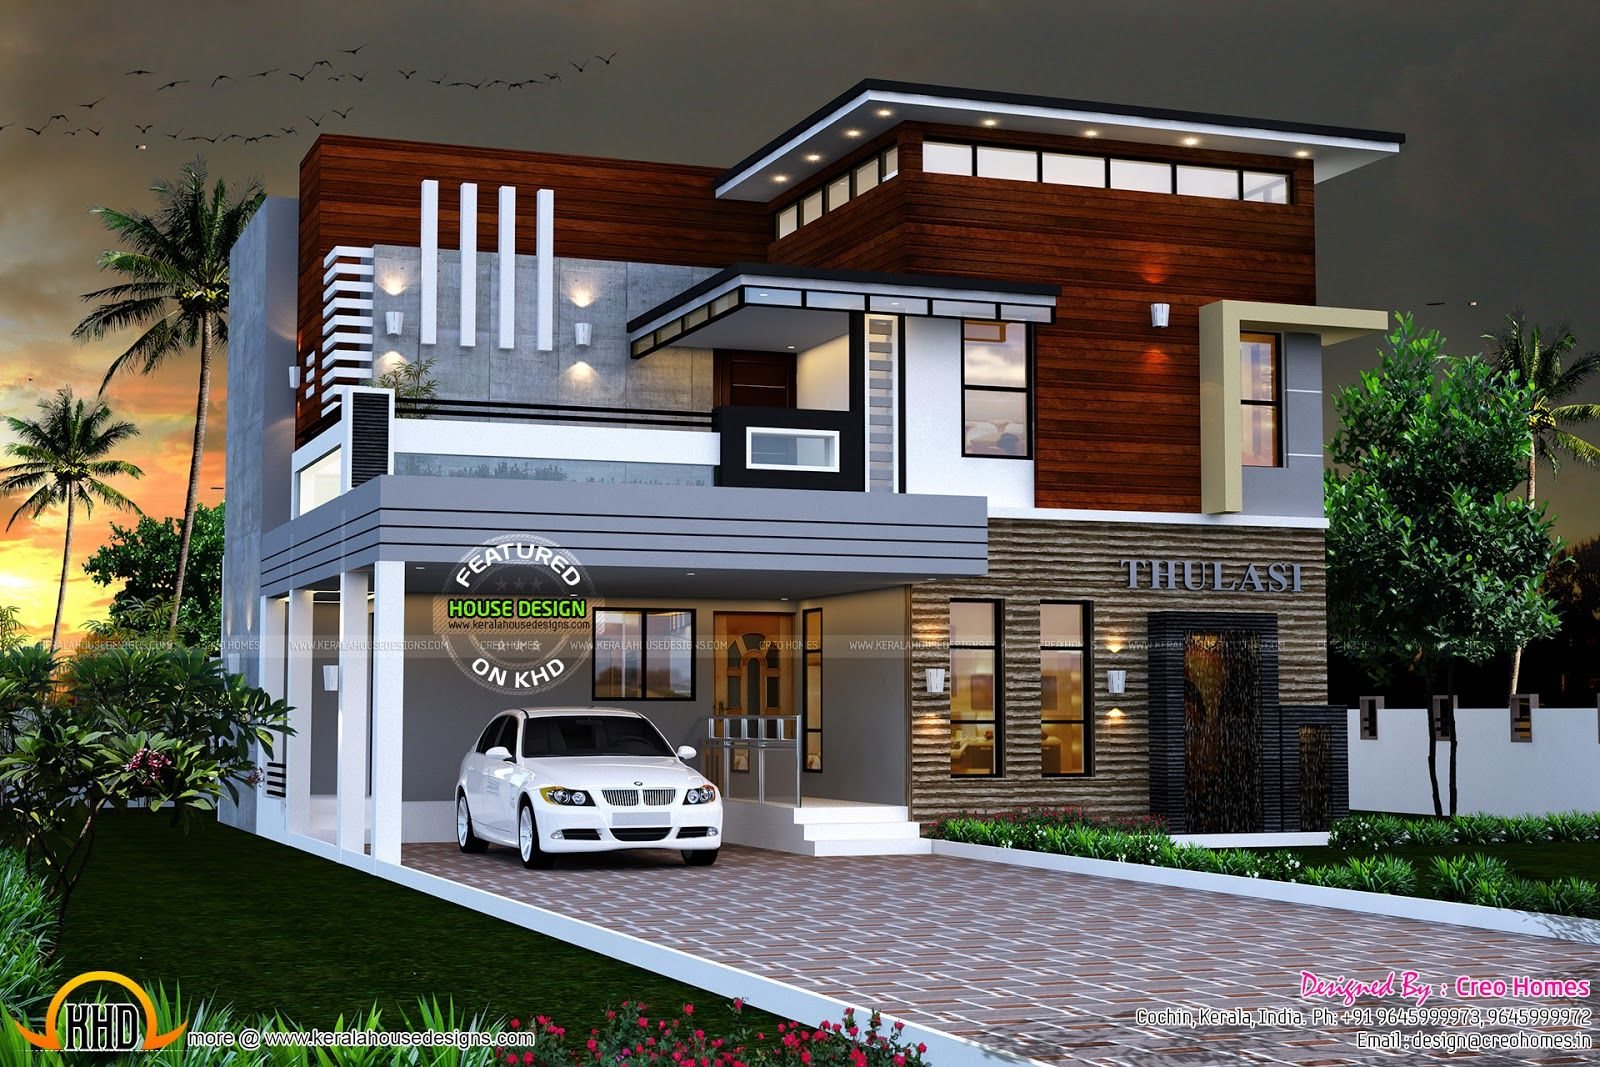 Eterior design modern small house architecture building plan home design kerala house plans home Best home design